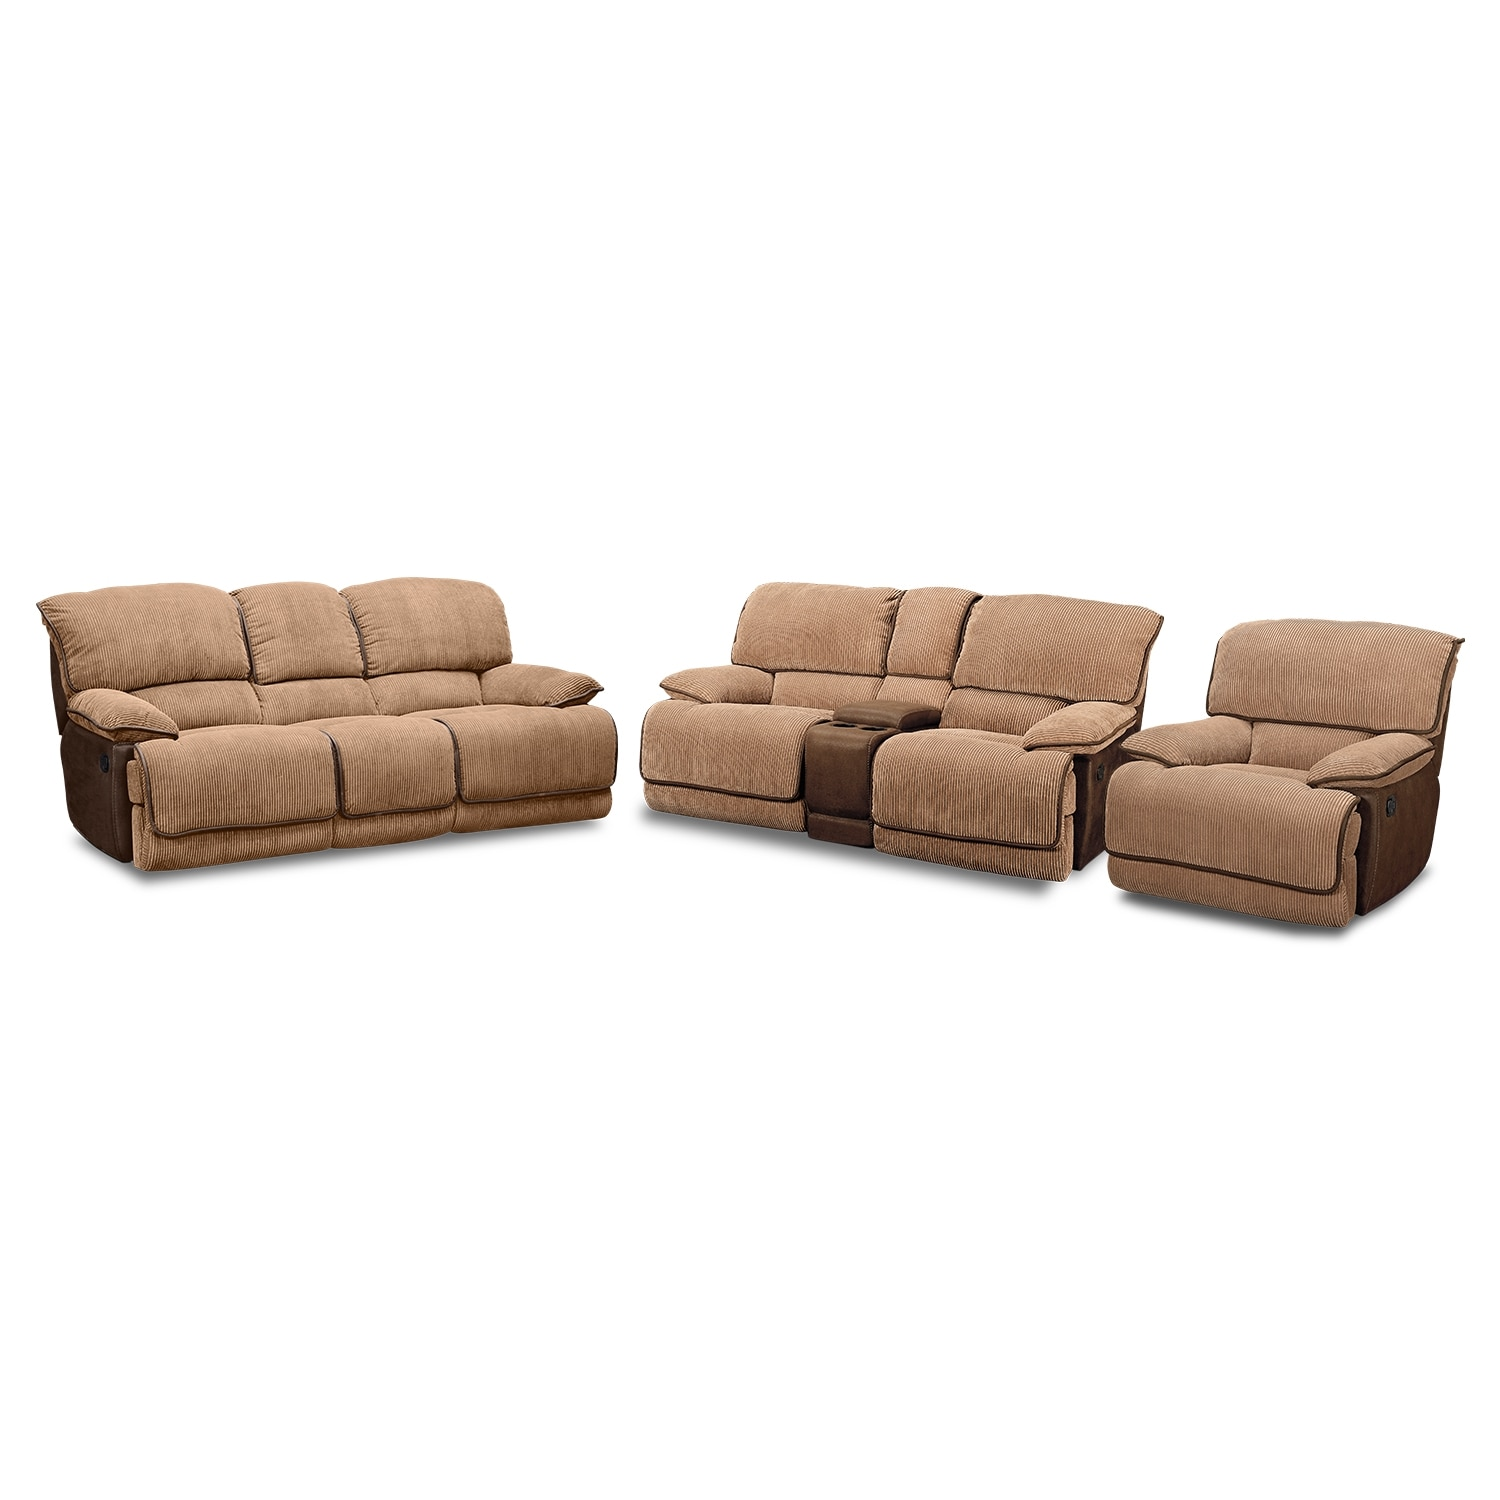 [Laguna 3 Pc. Reclining Living Room]